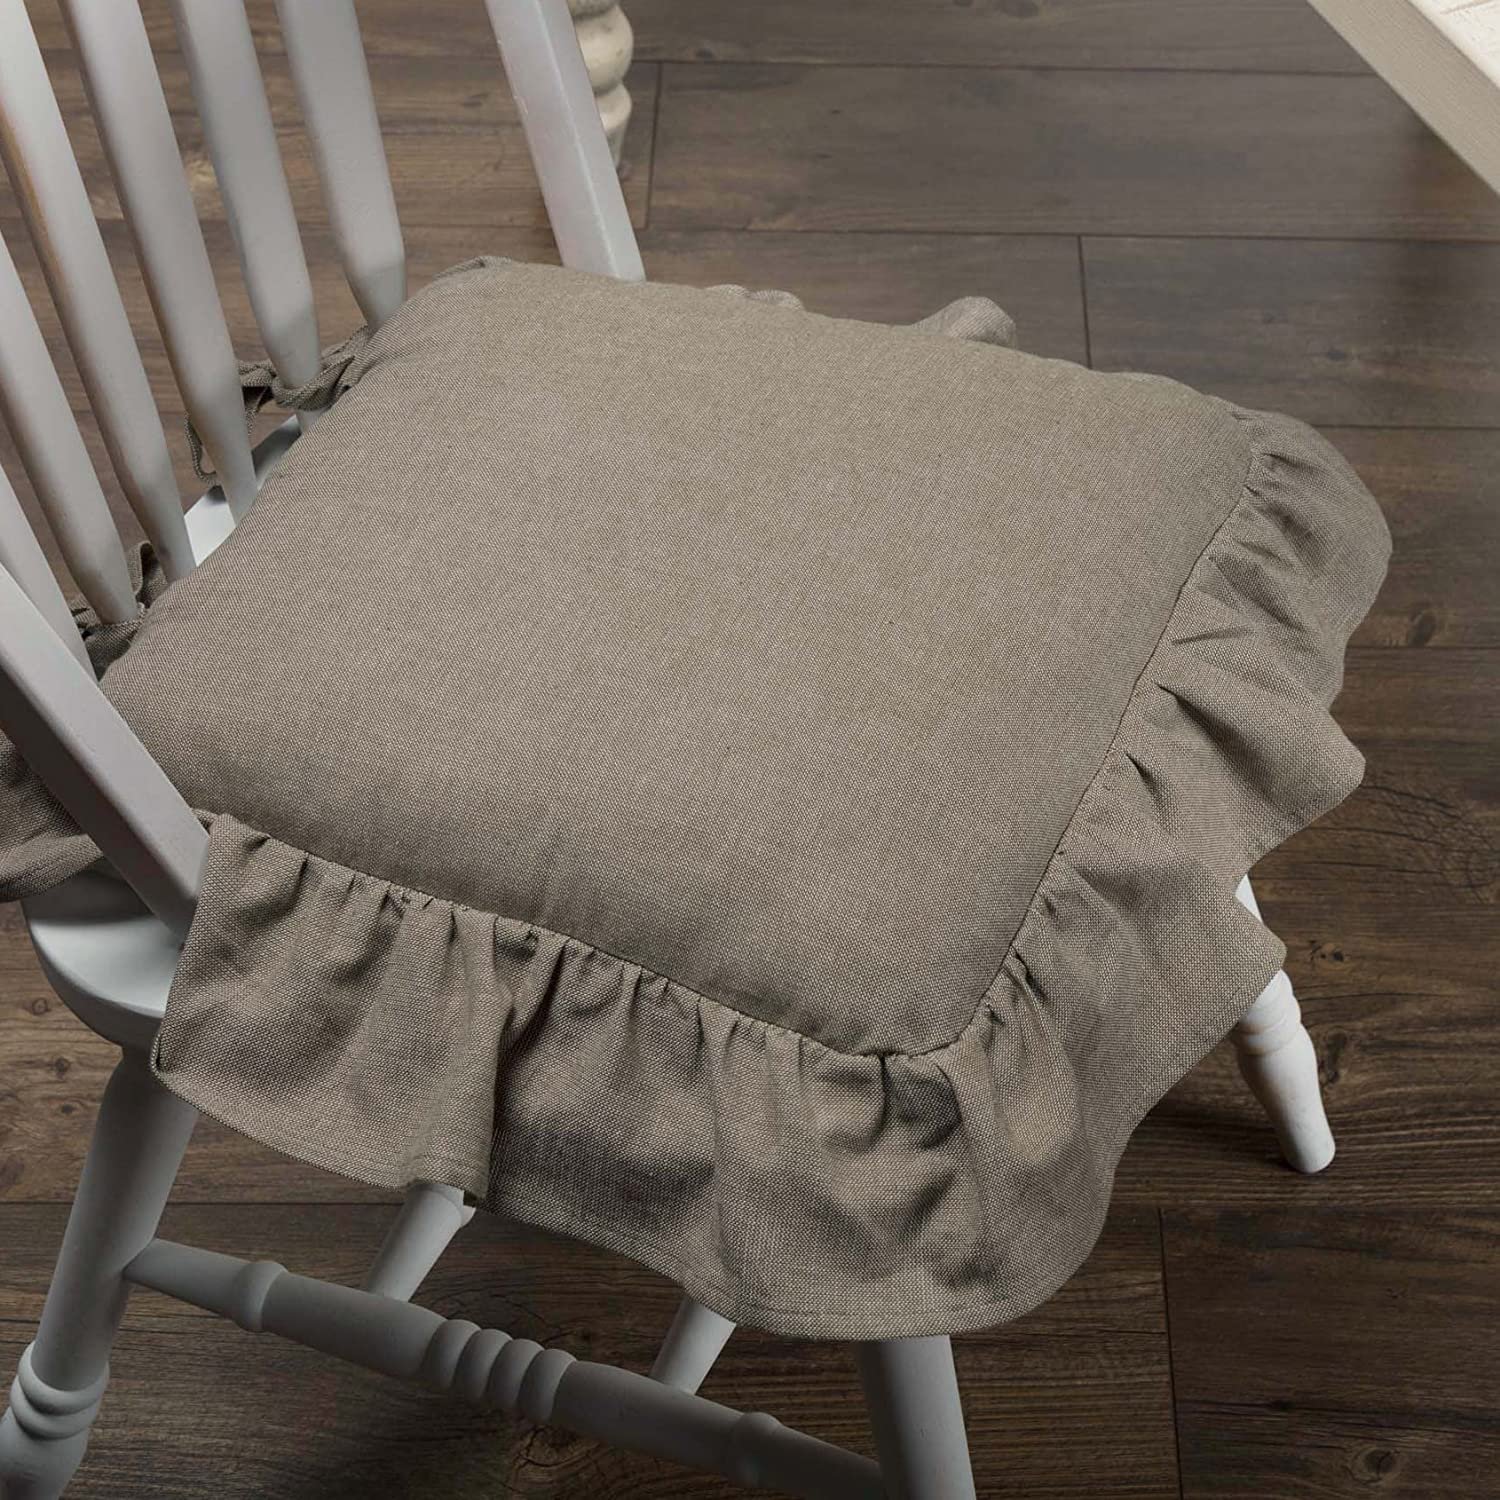 Piper Classics Ruffled Chambray Taupe-Grey Chair Pad, 15x15, Farmhouse Style VHC Brands